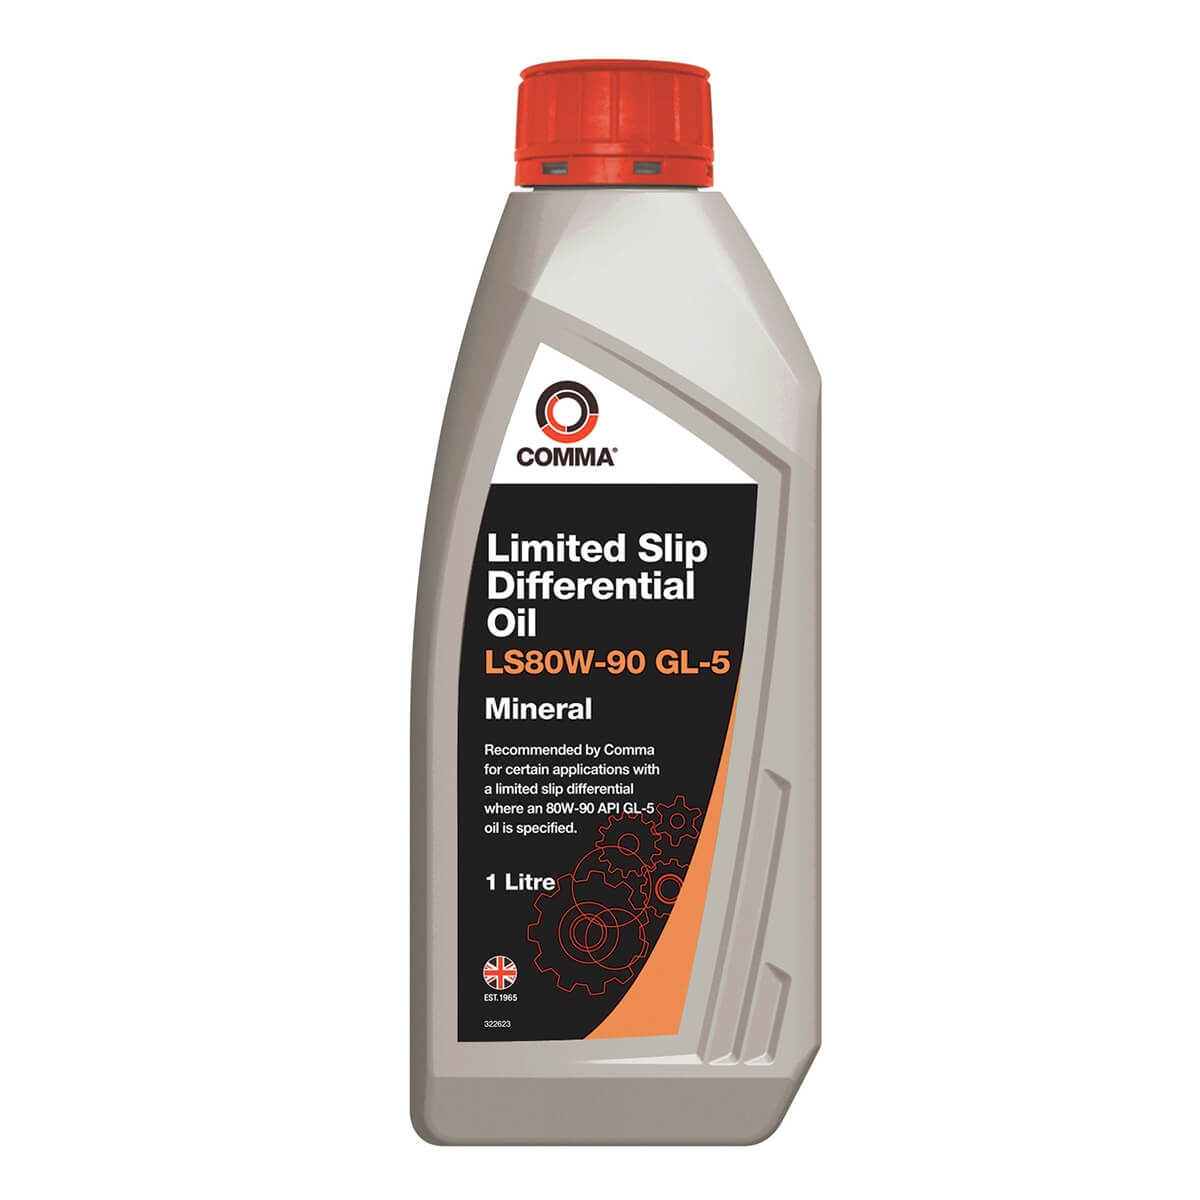 HYUNDAI H-1 Diff Gear Oil